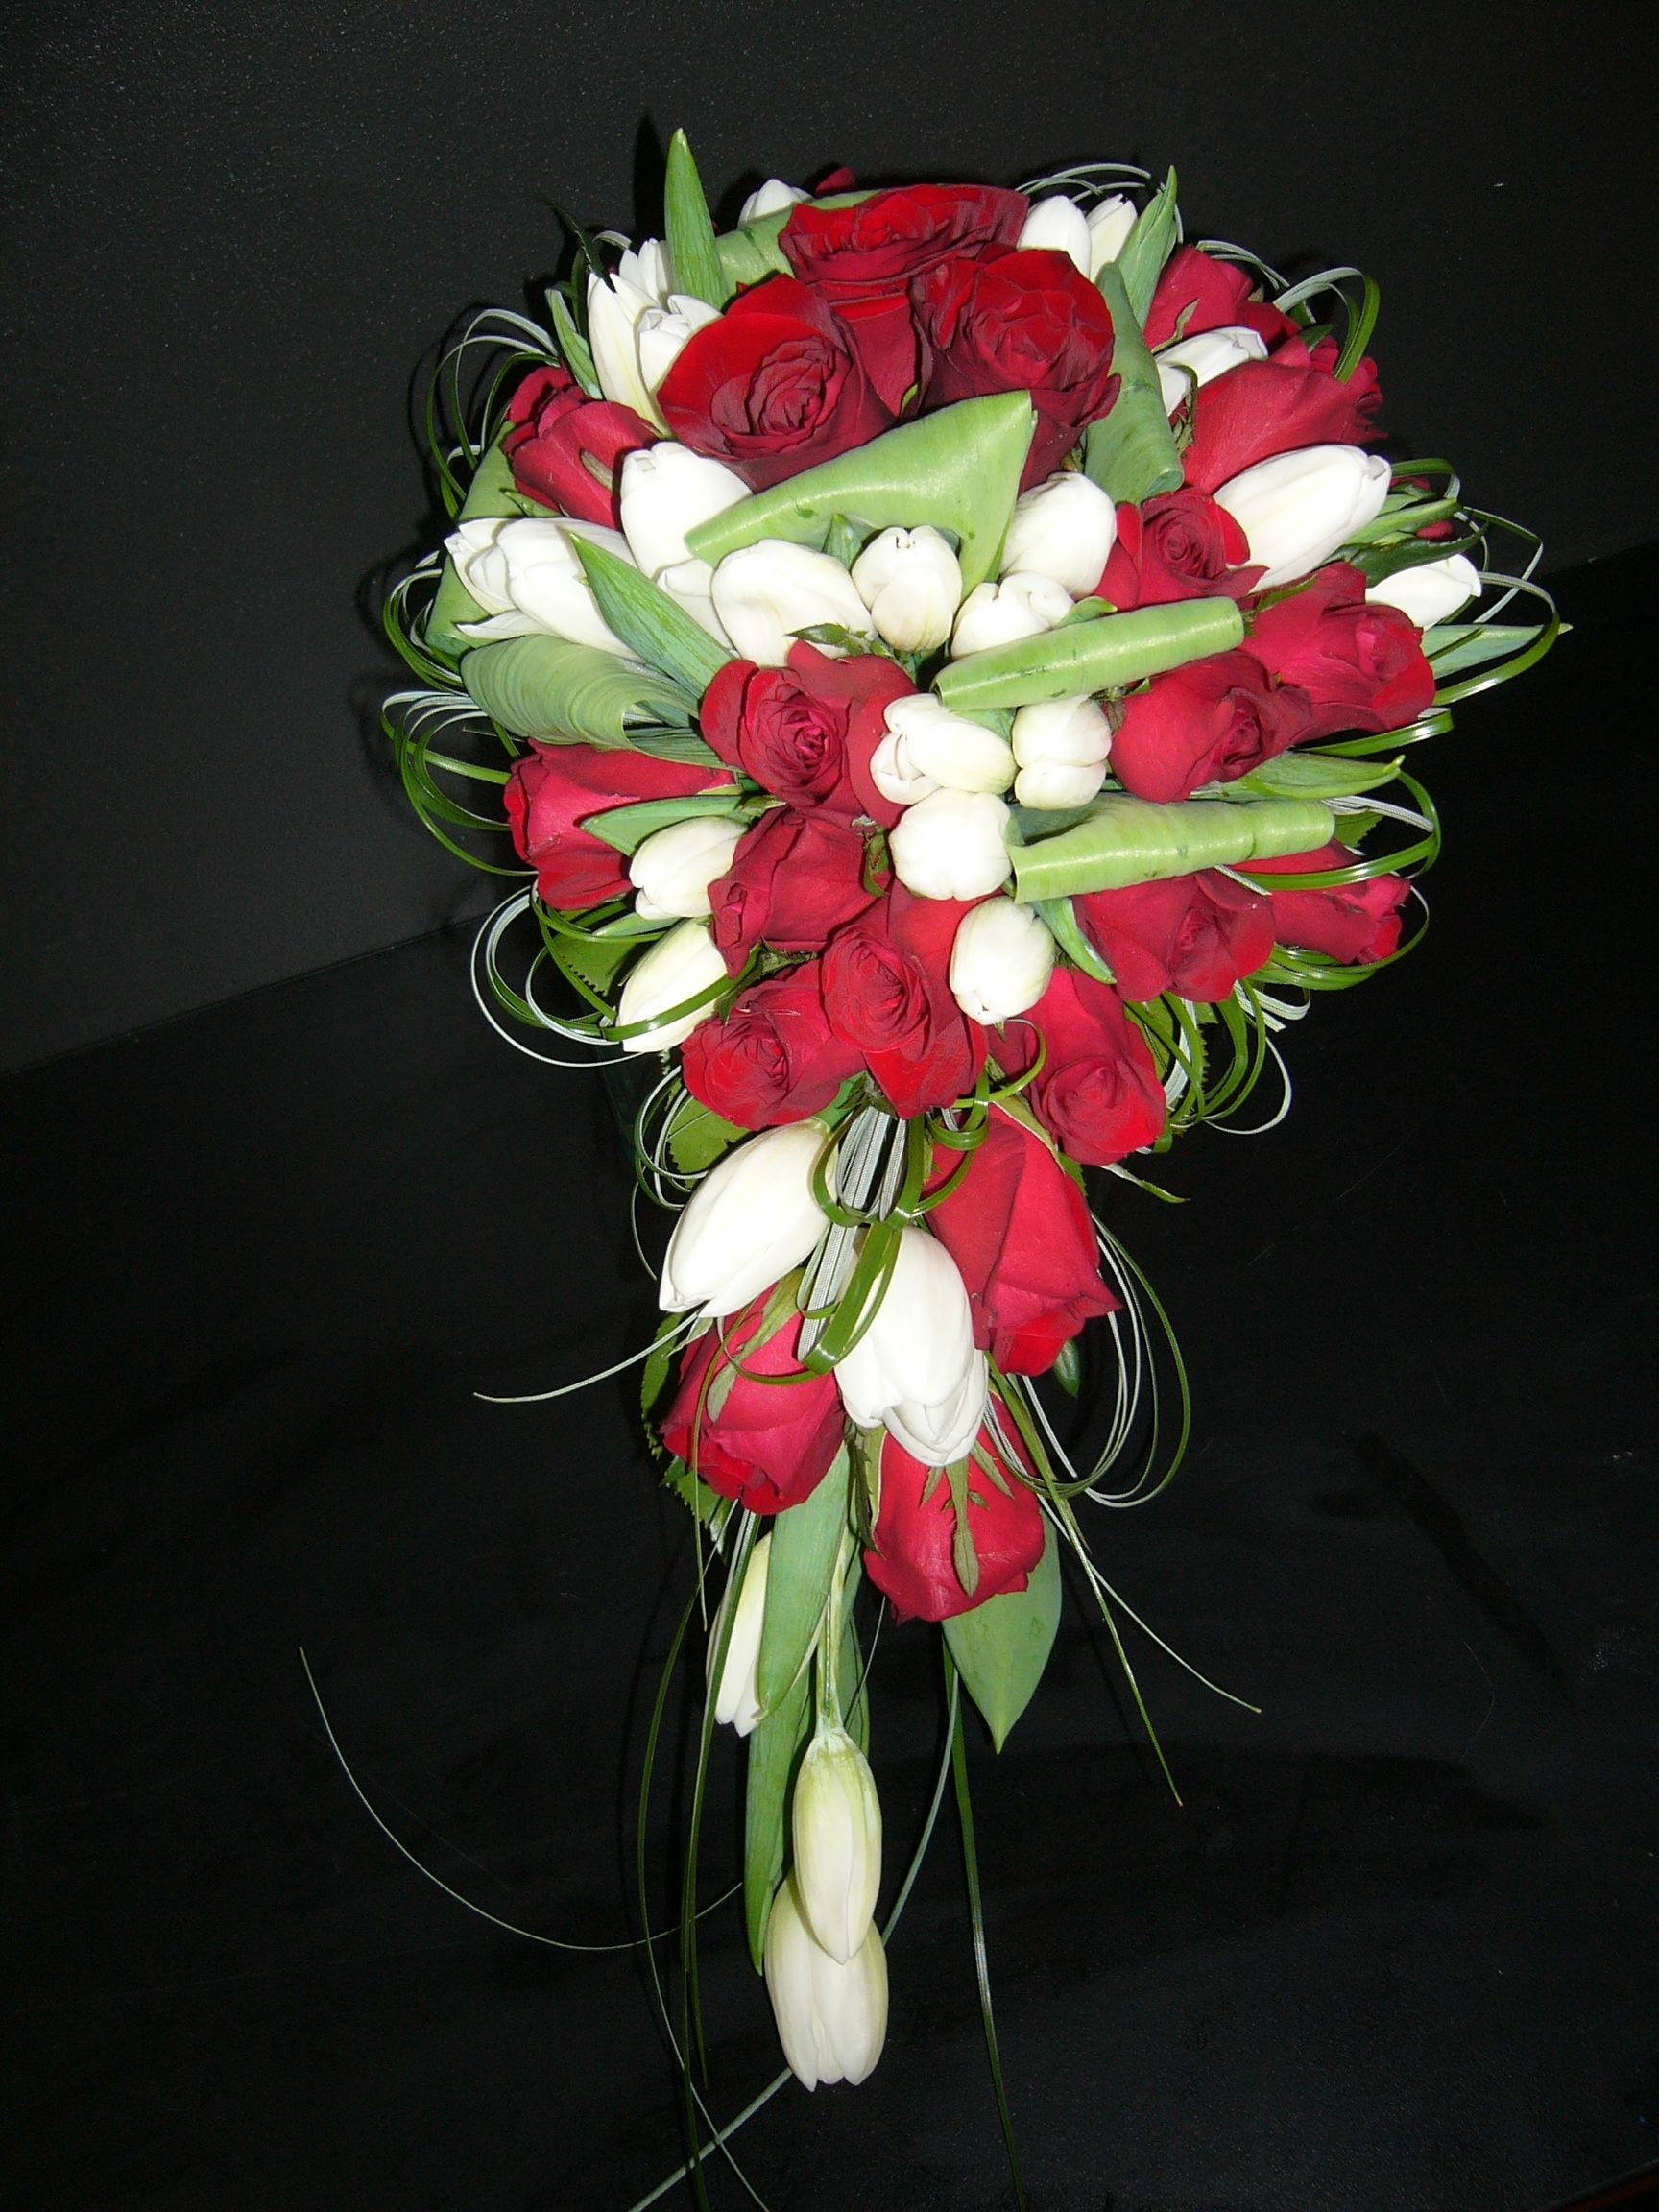 Wedding bouquets teardrop  teardroptulipredrosebeargrass  fleurs mariage  Pinterest  Red